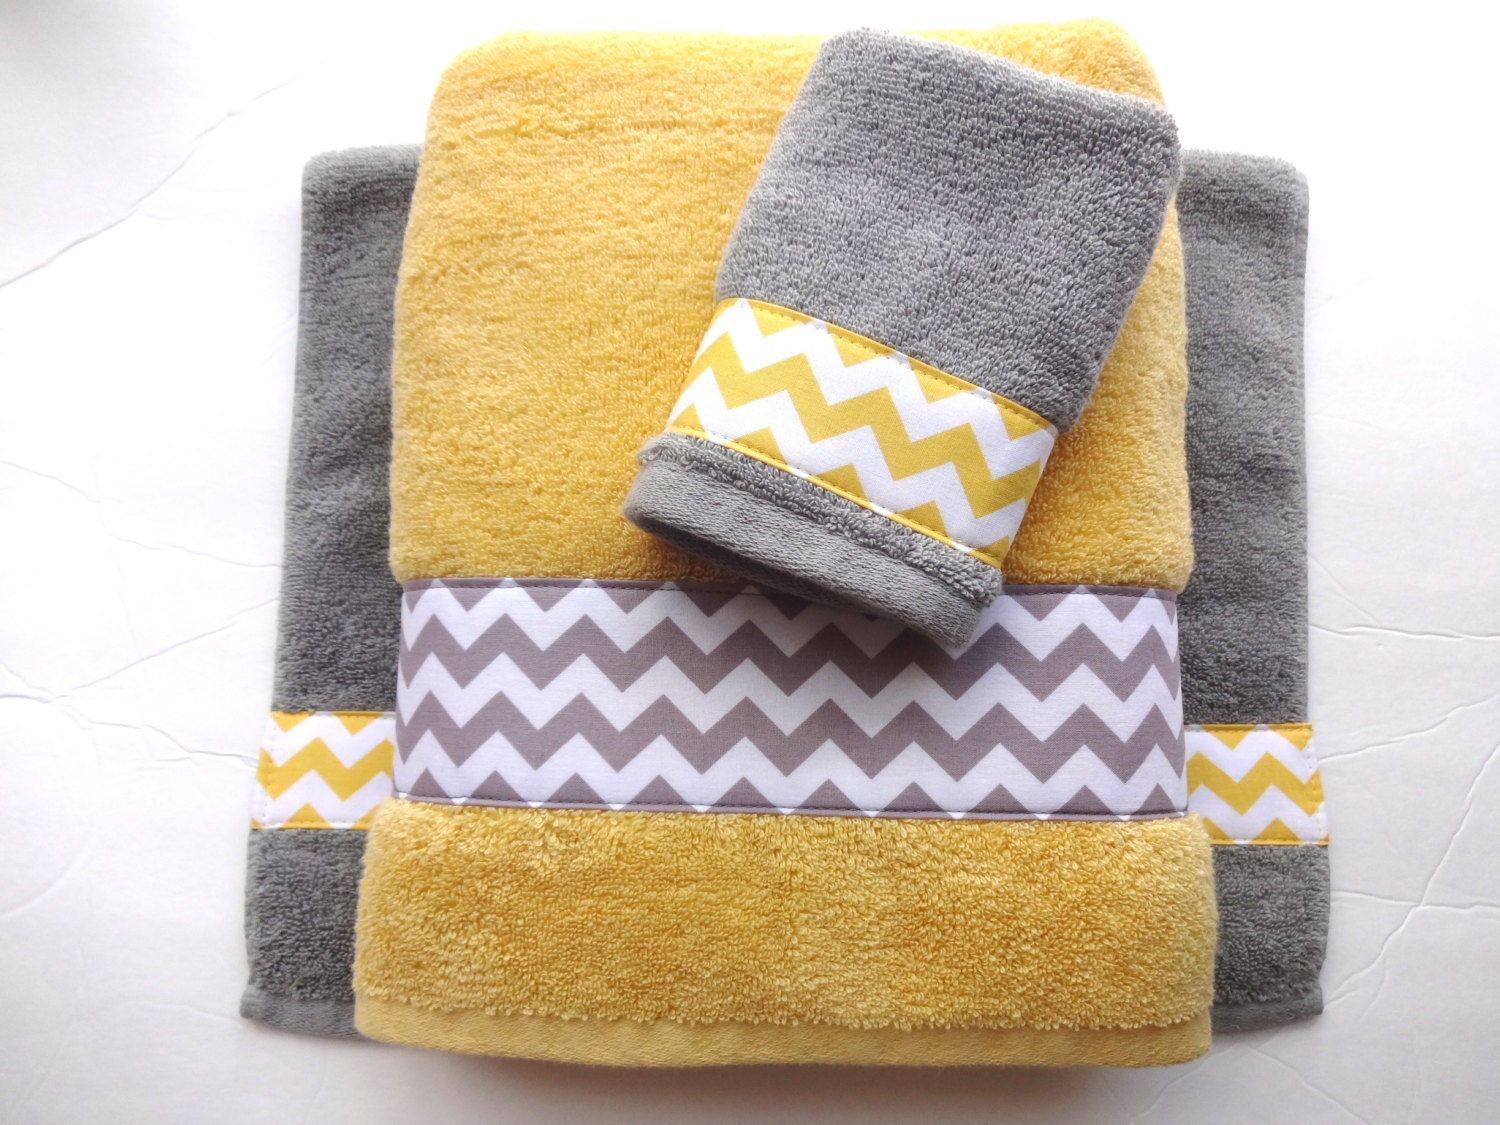 yellow bathroom accessories.  zoom Pick Your Size Towel yellow and grey towels gray